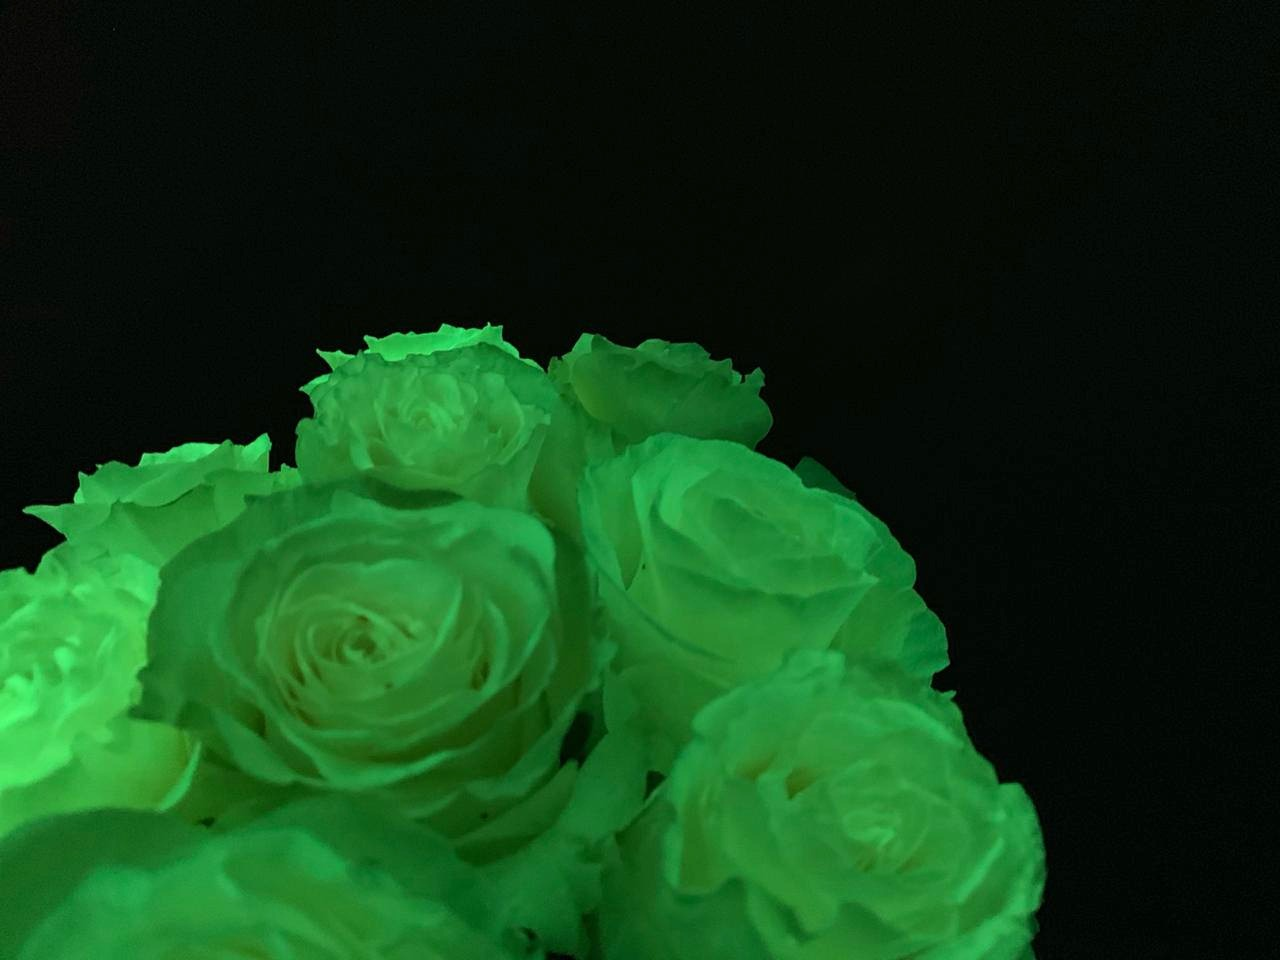 Fluorescent (Glow in the Dark Roses)